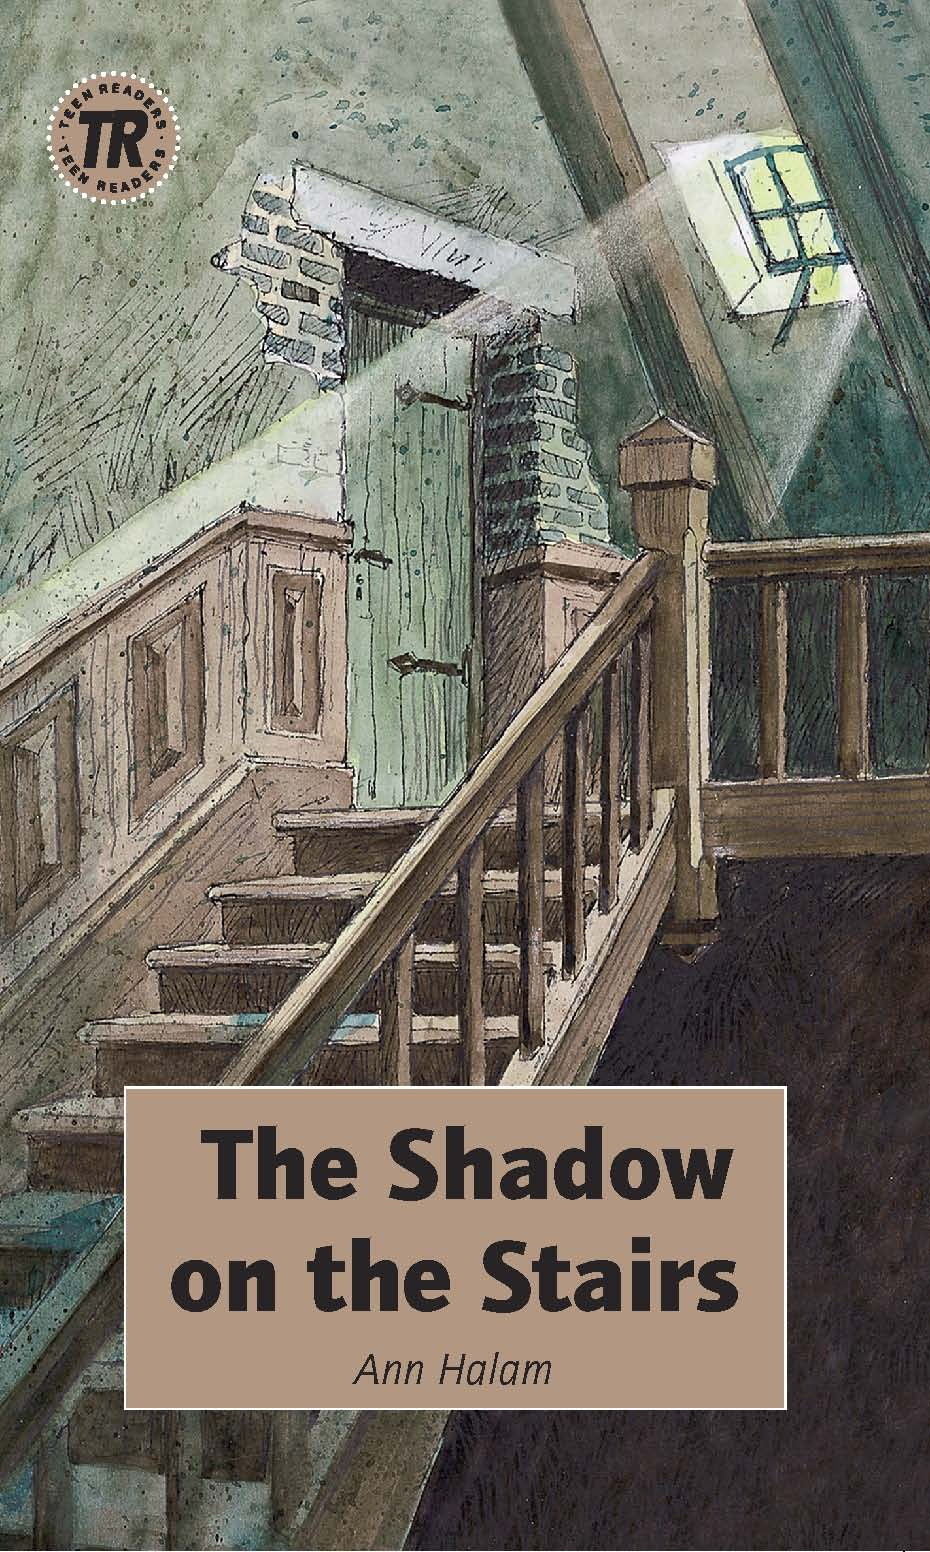 The Shadow on the Stairs